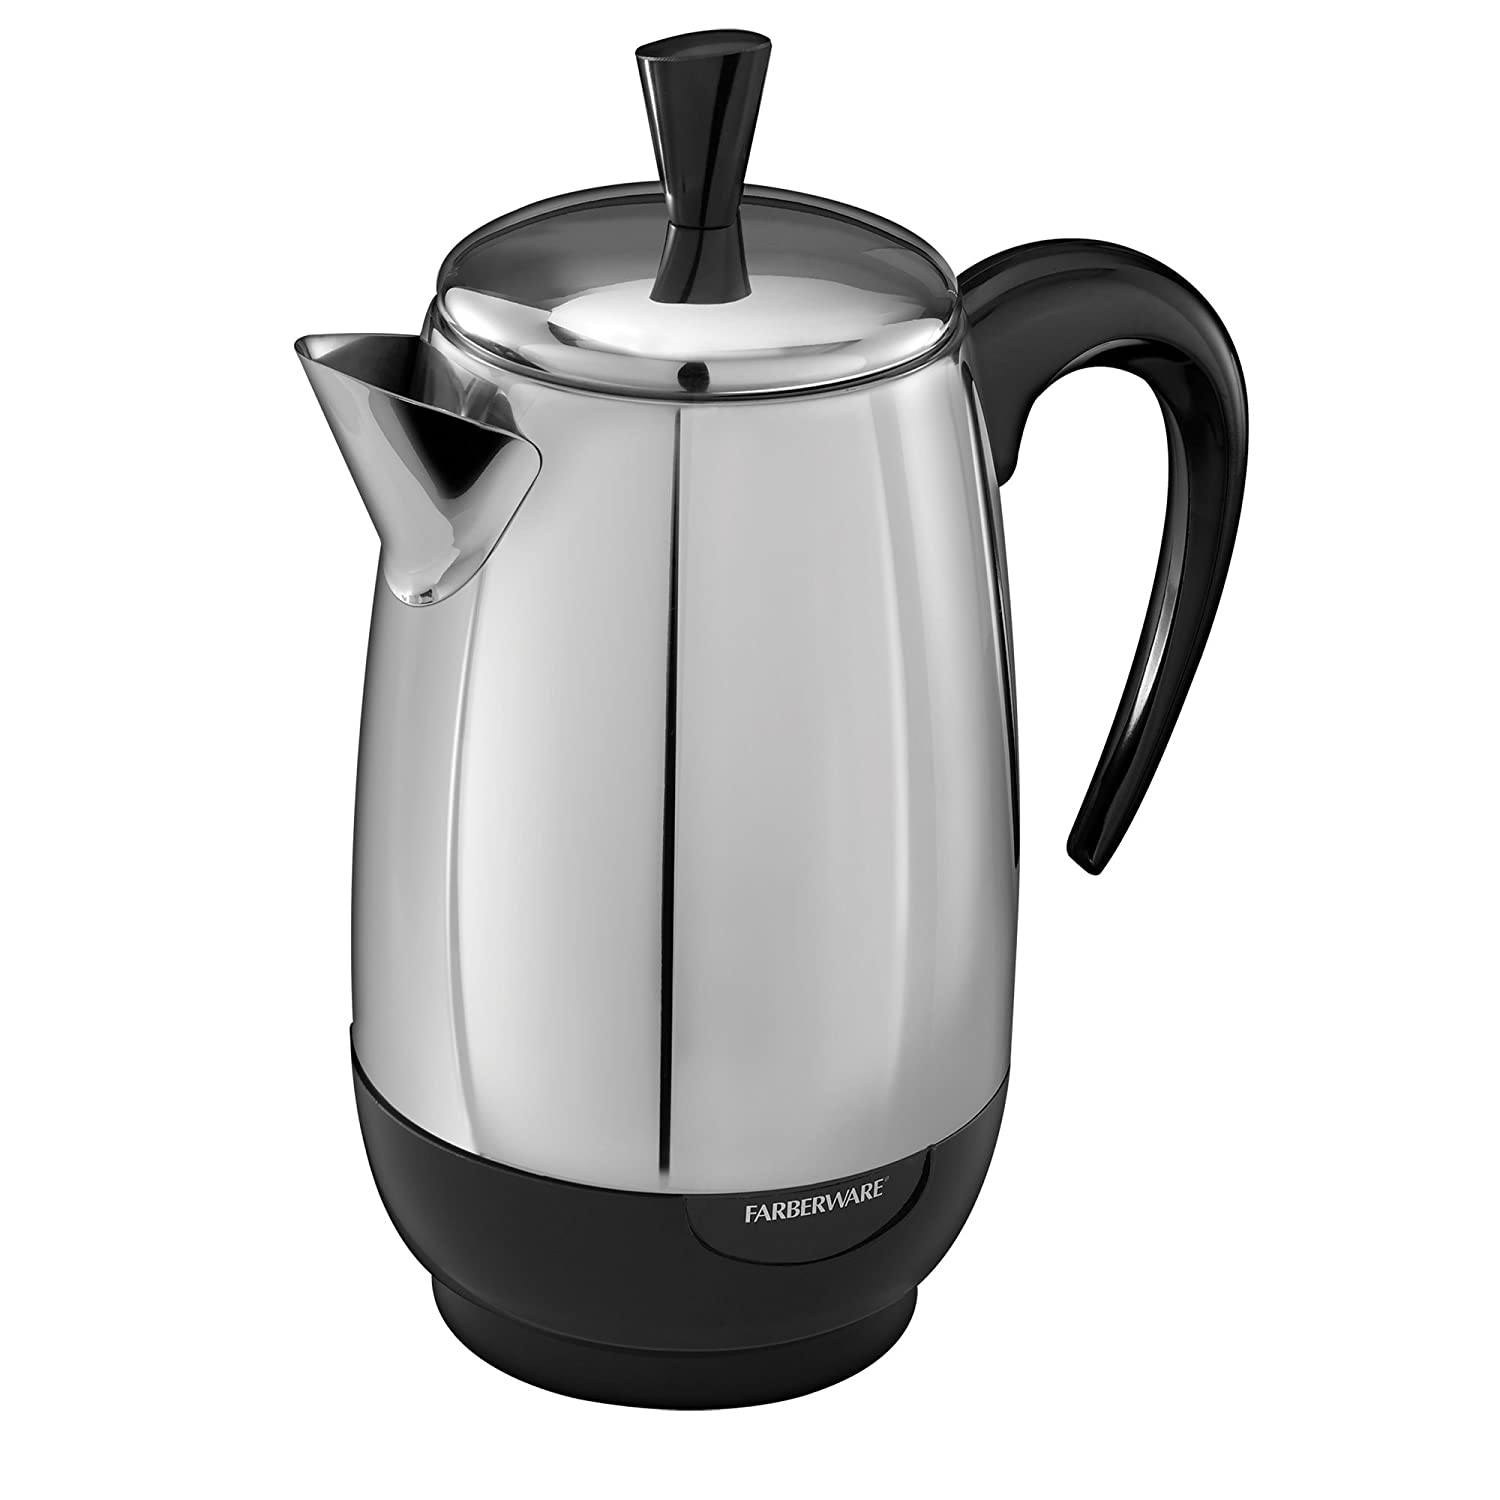 Farberware PK8000SS Coffee Percolator, Stainless Steel